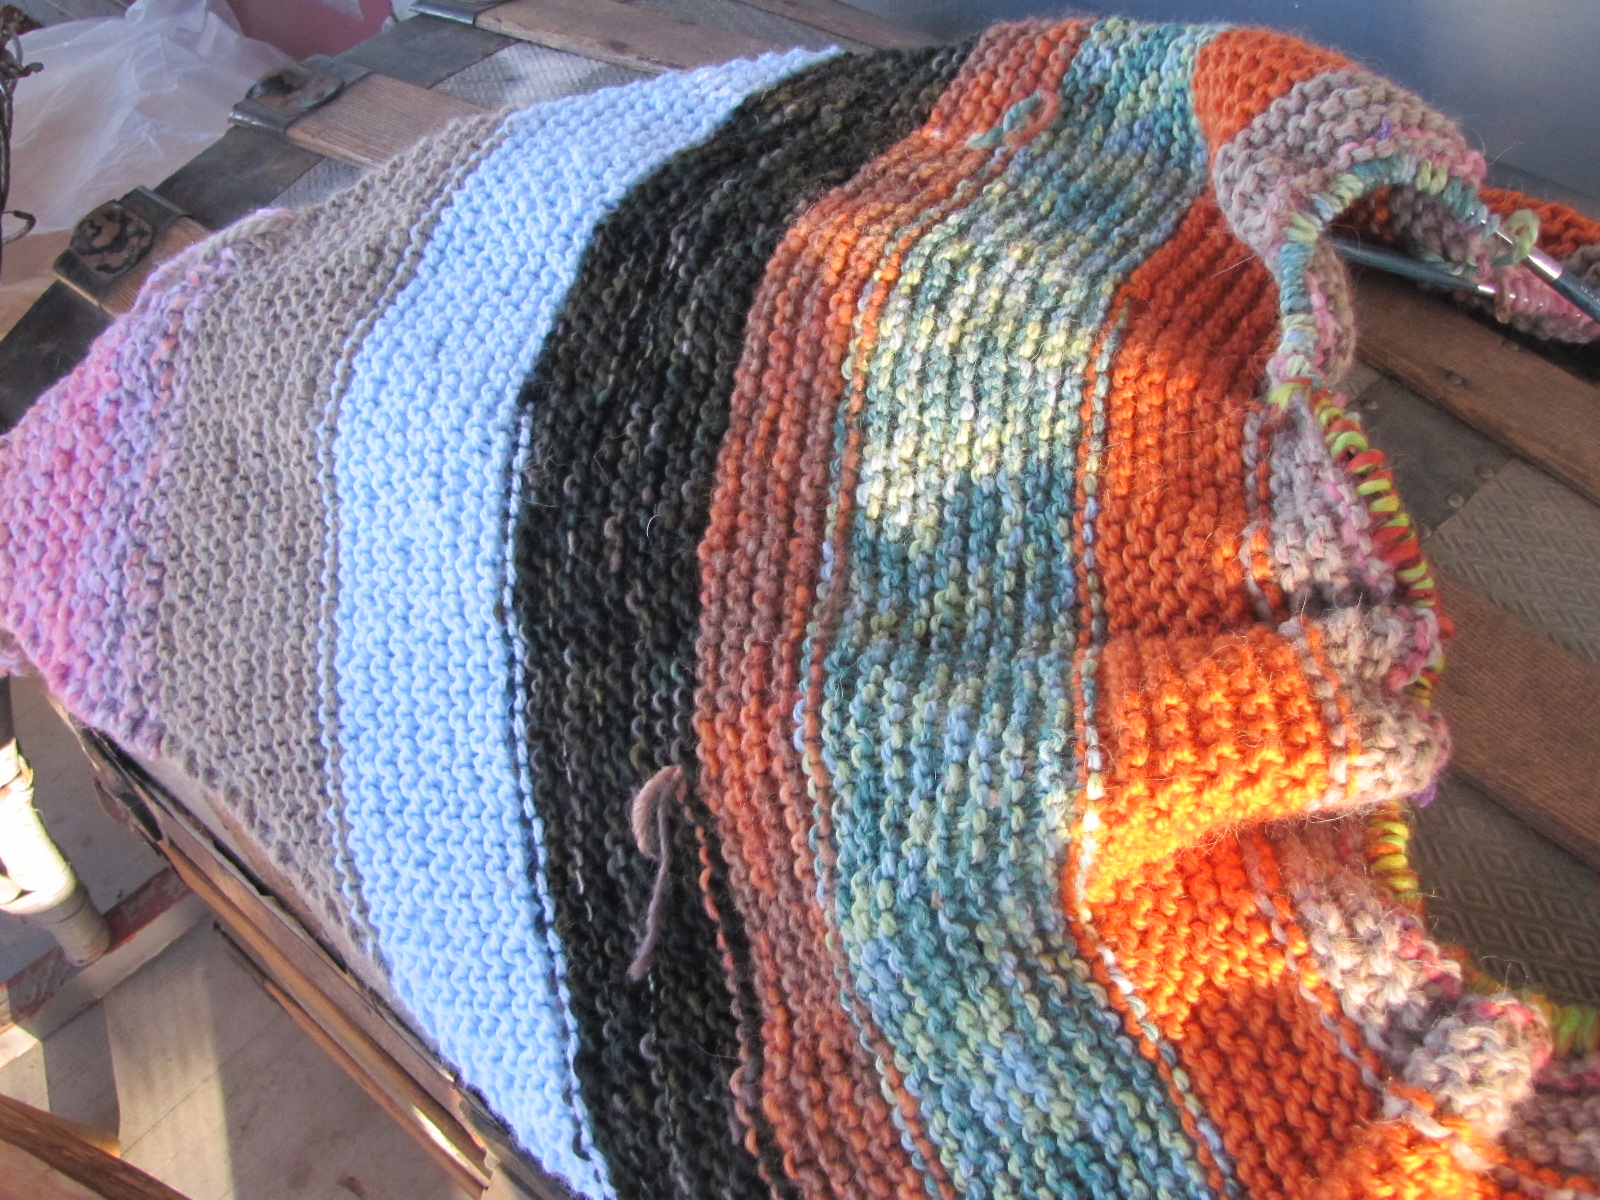 How To Knit Stitches On Scrap Yarn : Monday Project Report   The Beginning Of A Bulky Scrappy Blanket A Polish G...